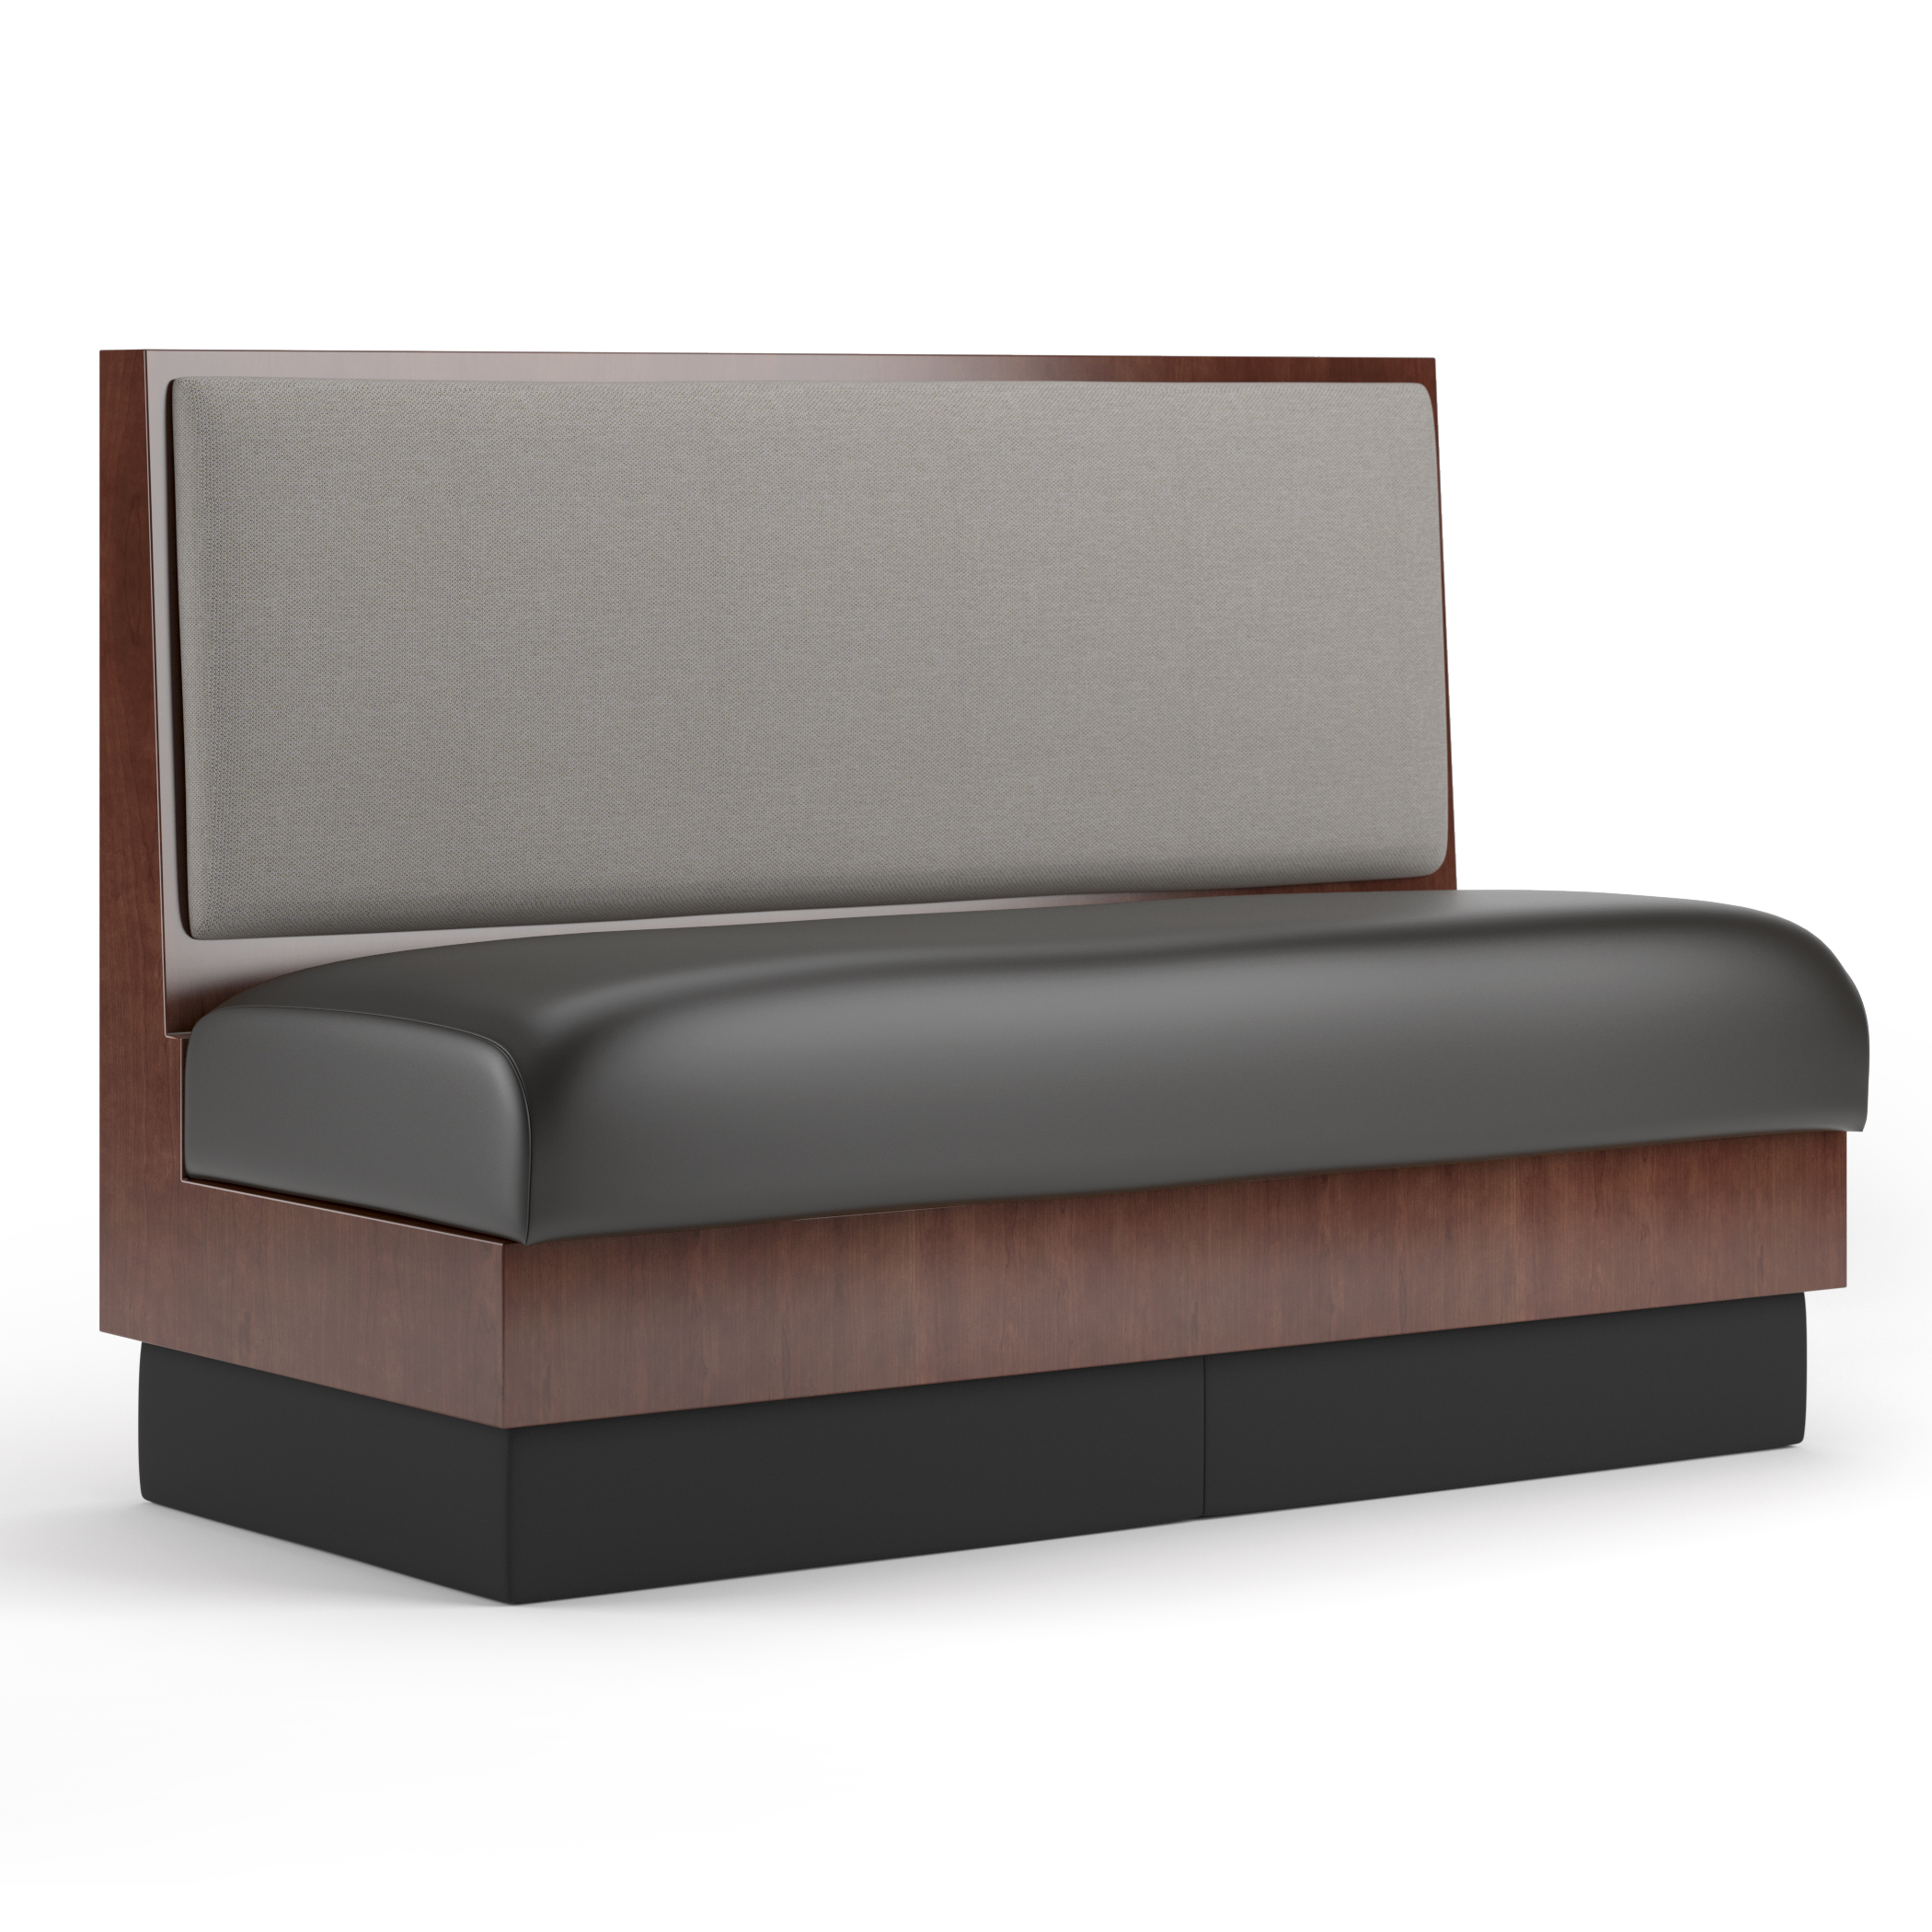 restaurant sofa booth seating dhi buchannan microfiber reviews bz booths and banquettes